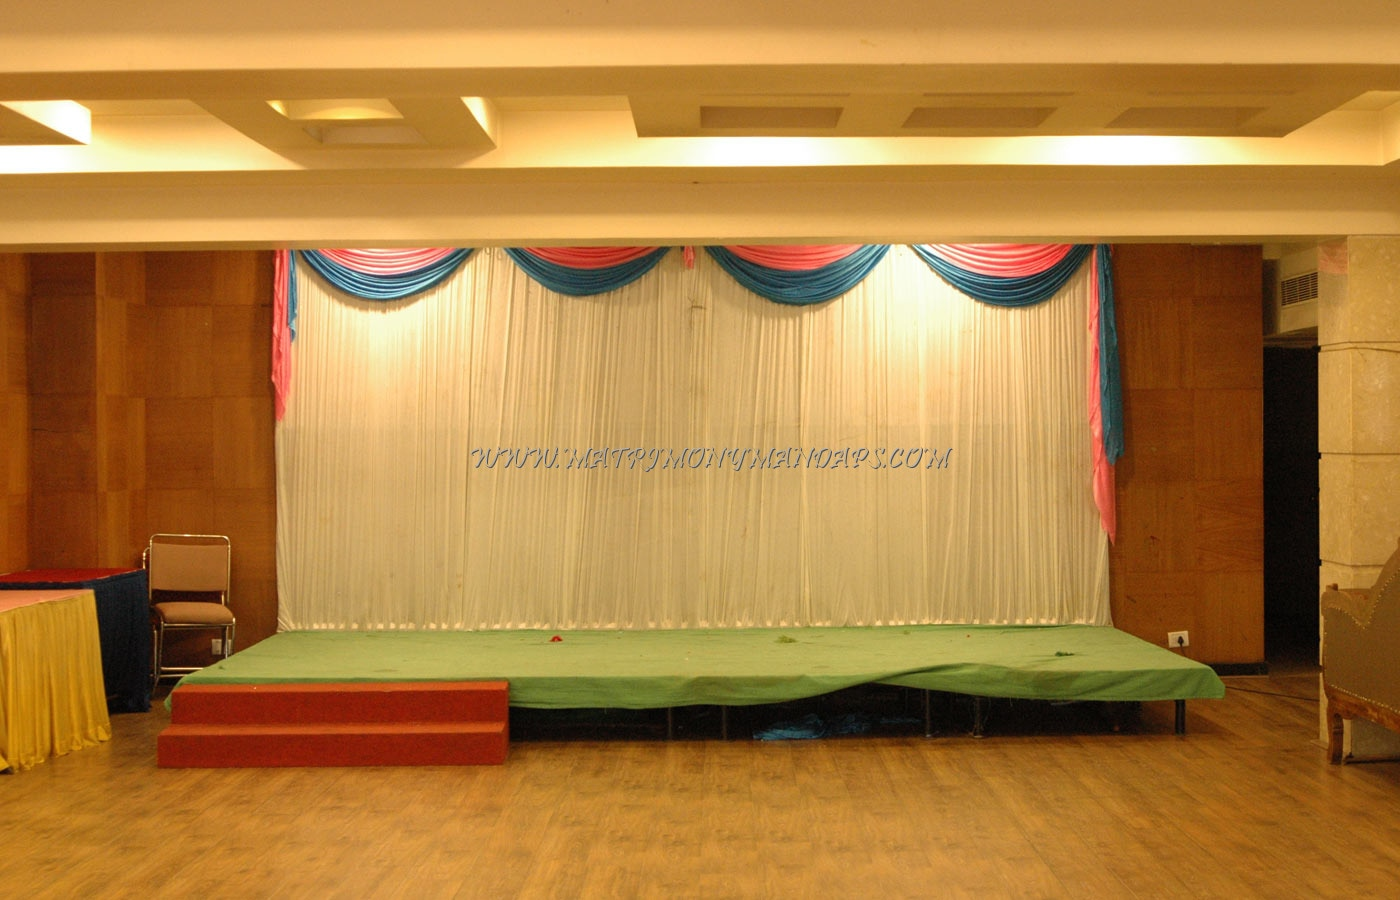 Chutneys Banquet Hall 1 - Pre-function Area